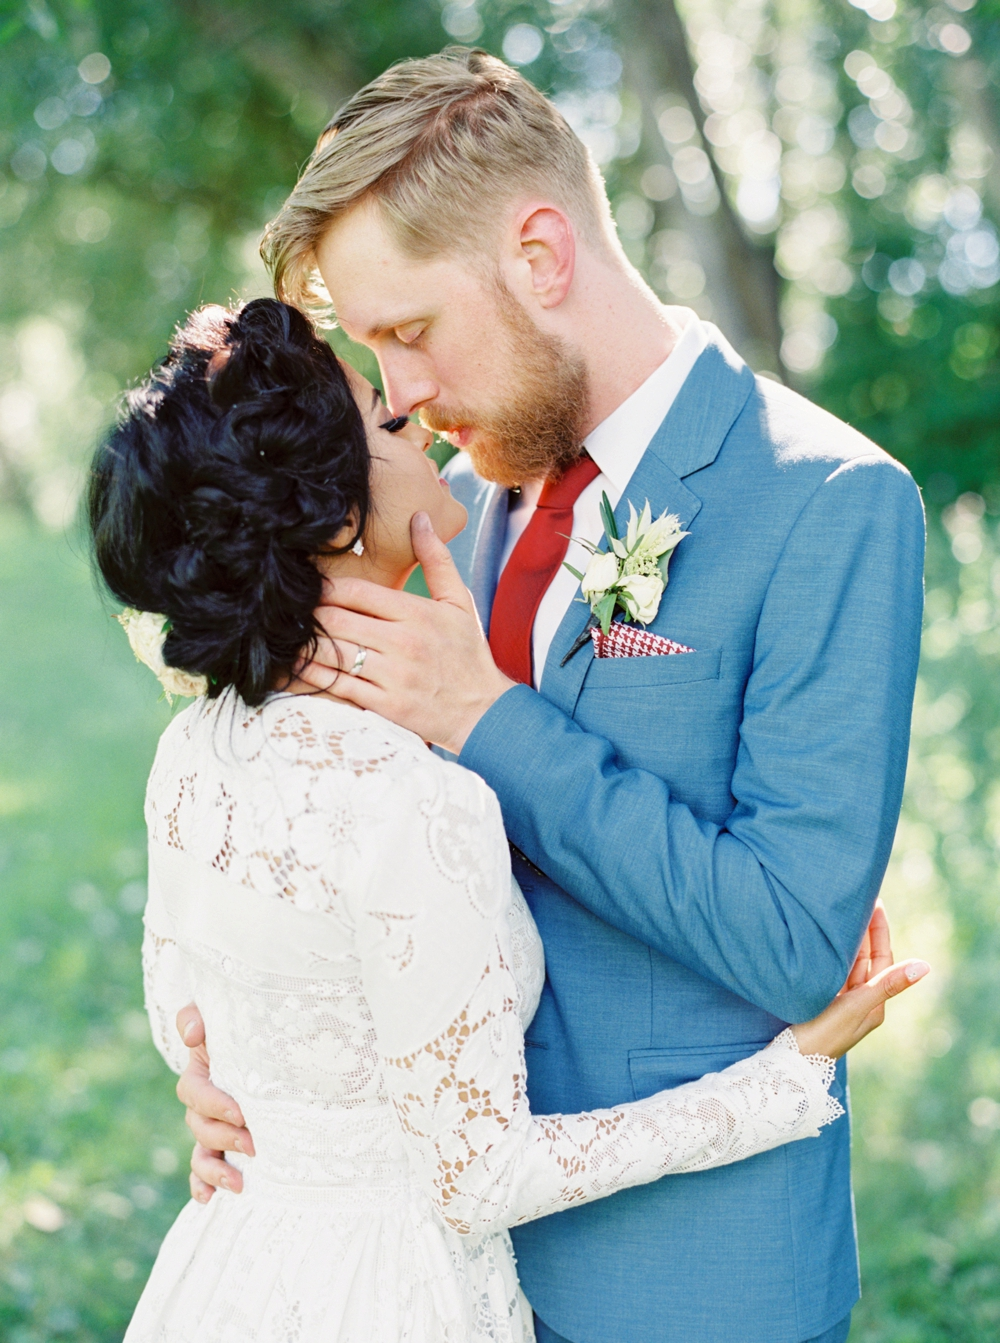 Calgary Wedding Photographers | Canmore Wedding Photography | Banff Wedding Photographer | Boho Wedding | Bohemian | Charbar Wedding | Smoke Bombs | Intimate Wedding | Indian Wedding